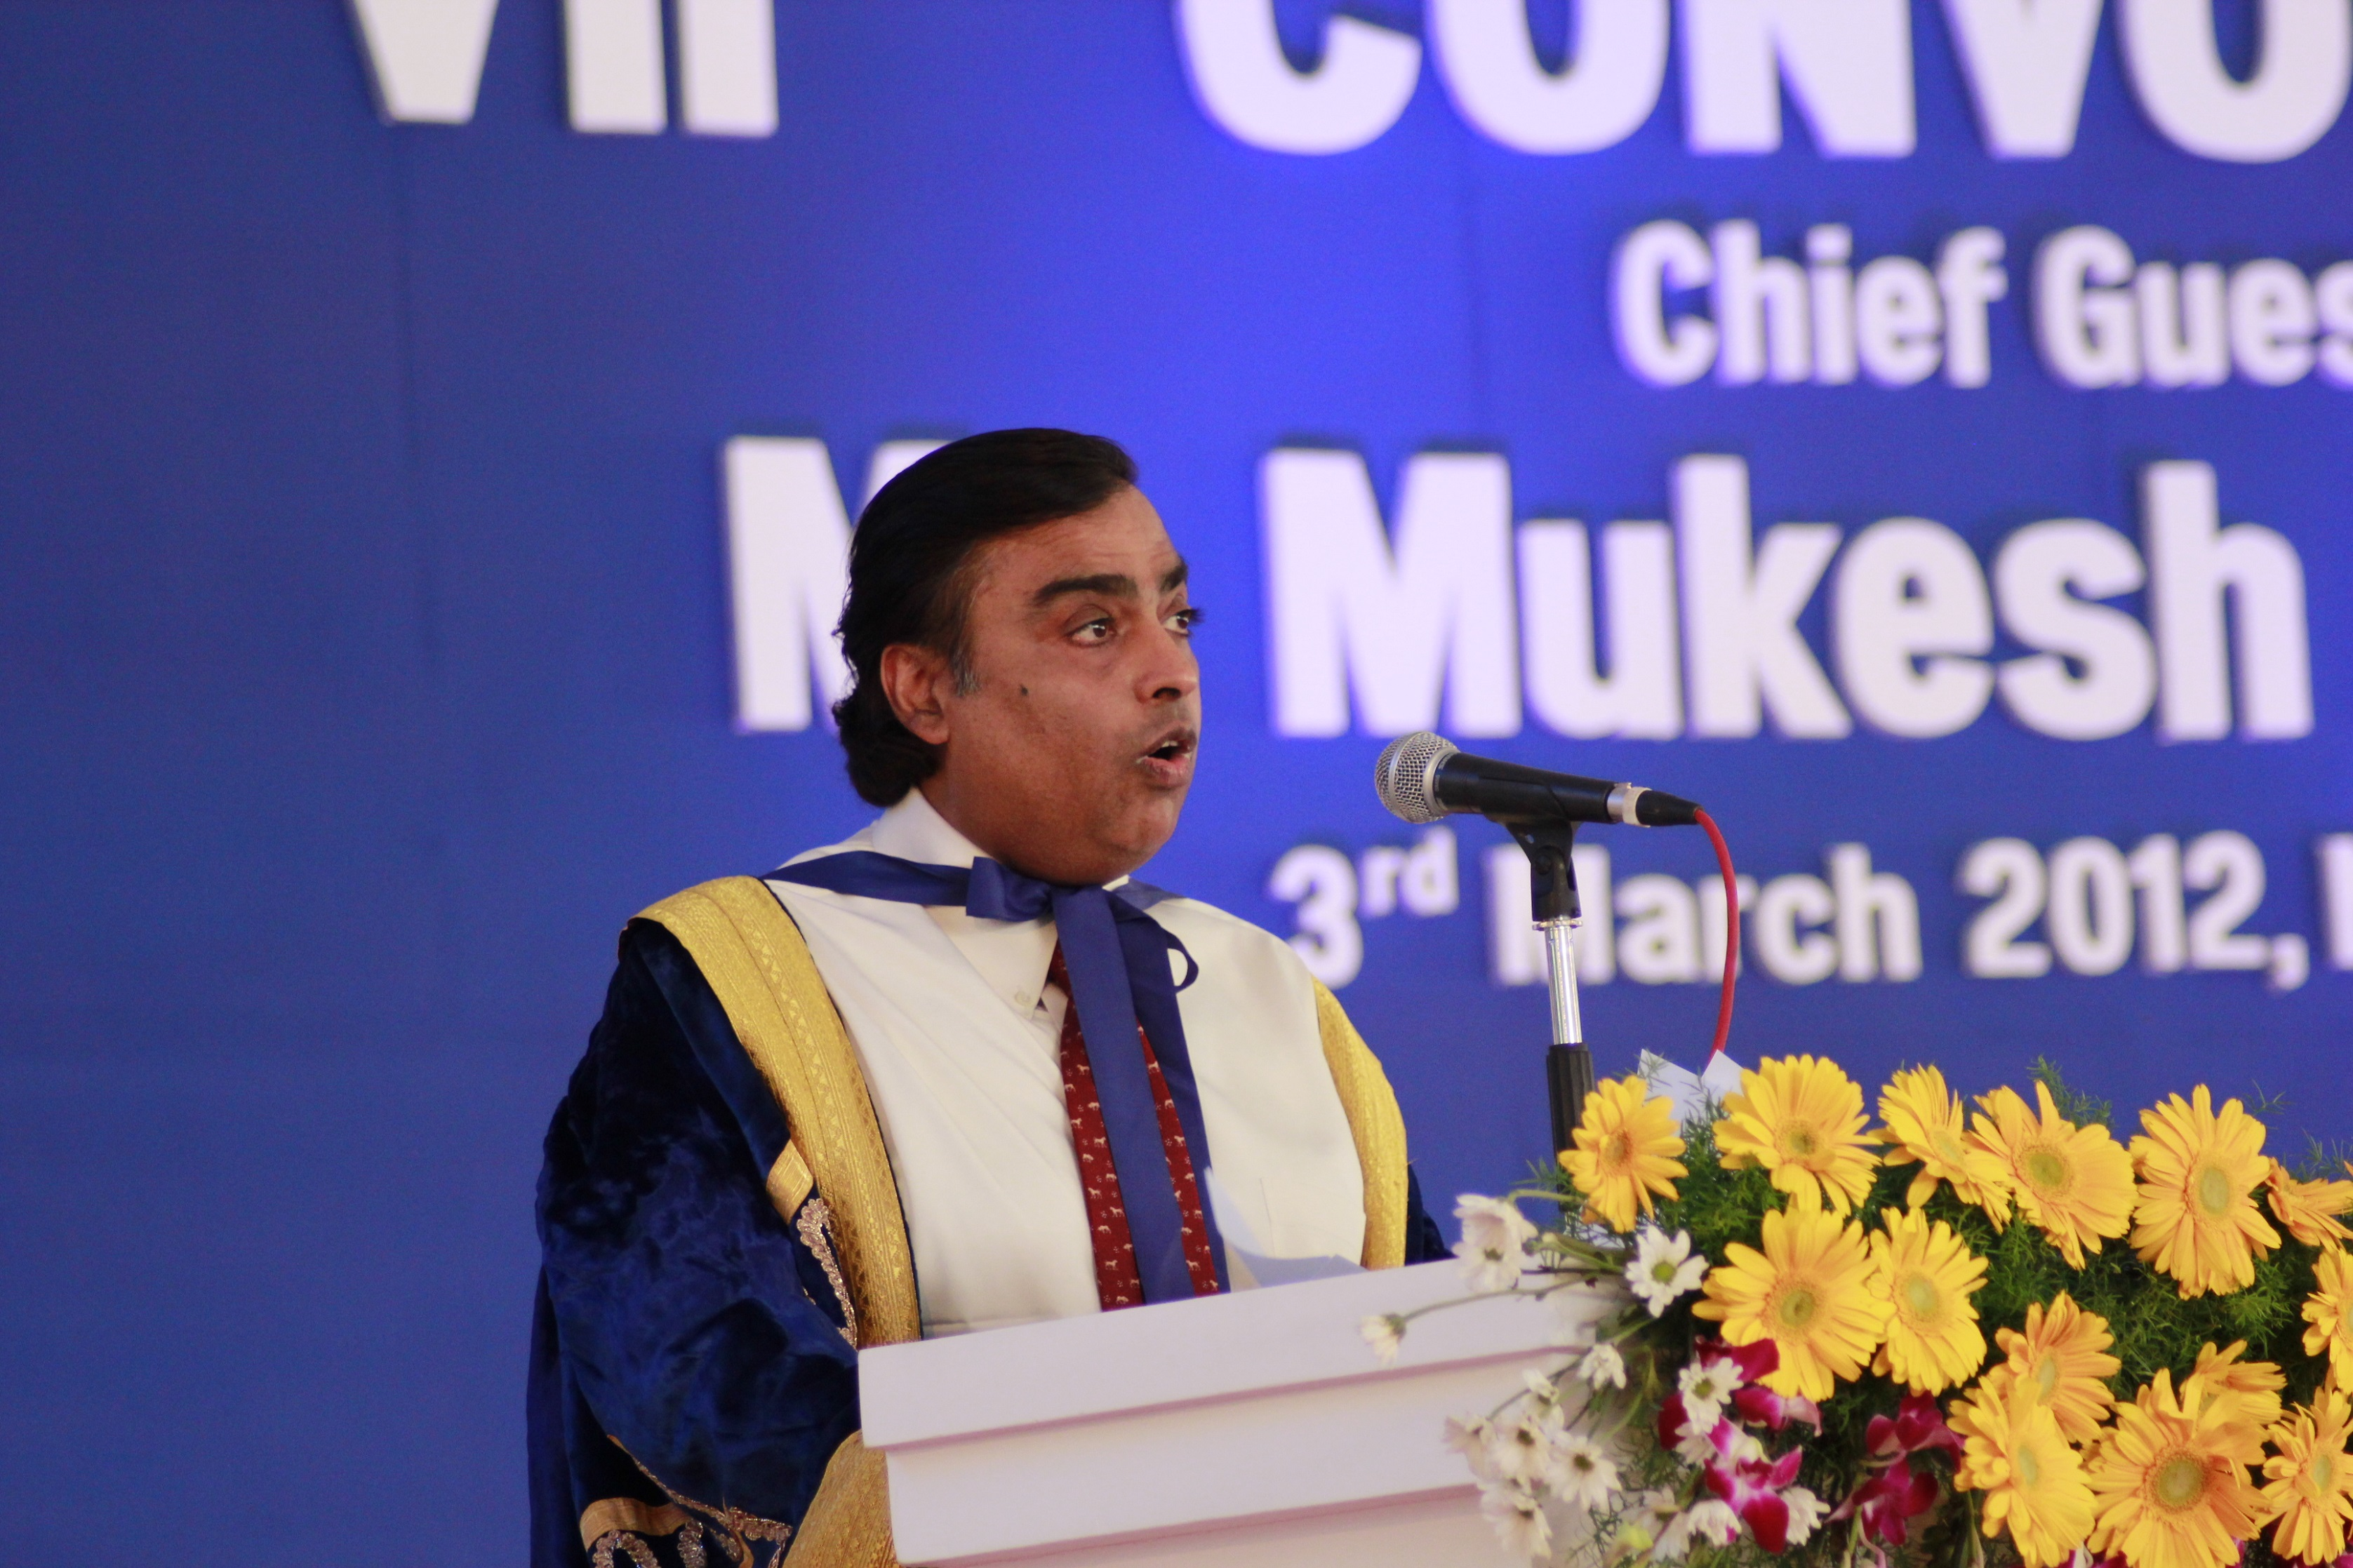 Mukesh Ambani at IMTN